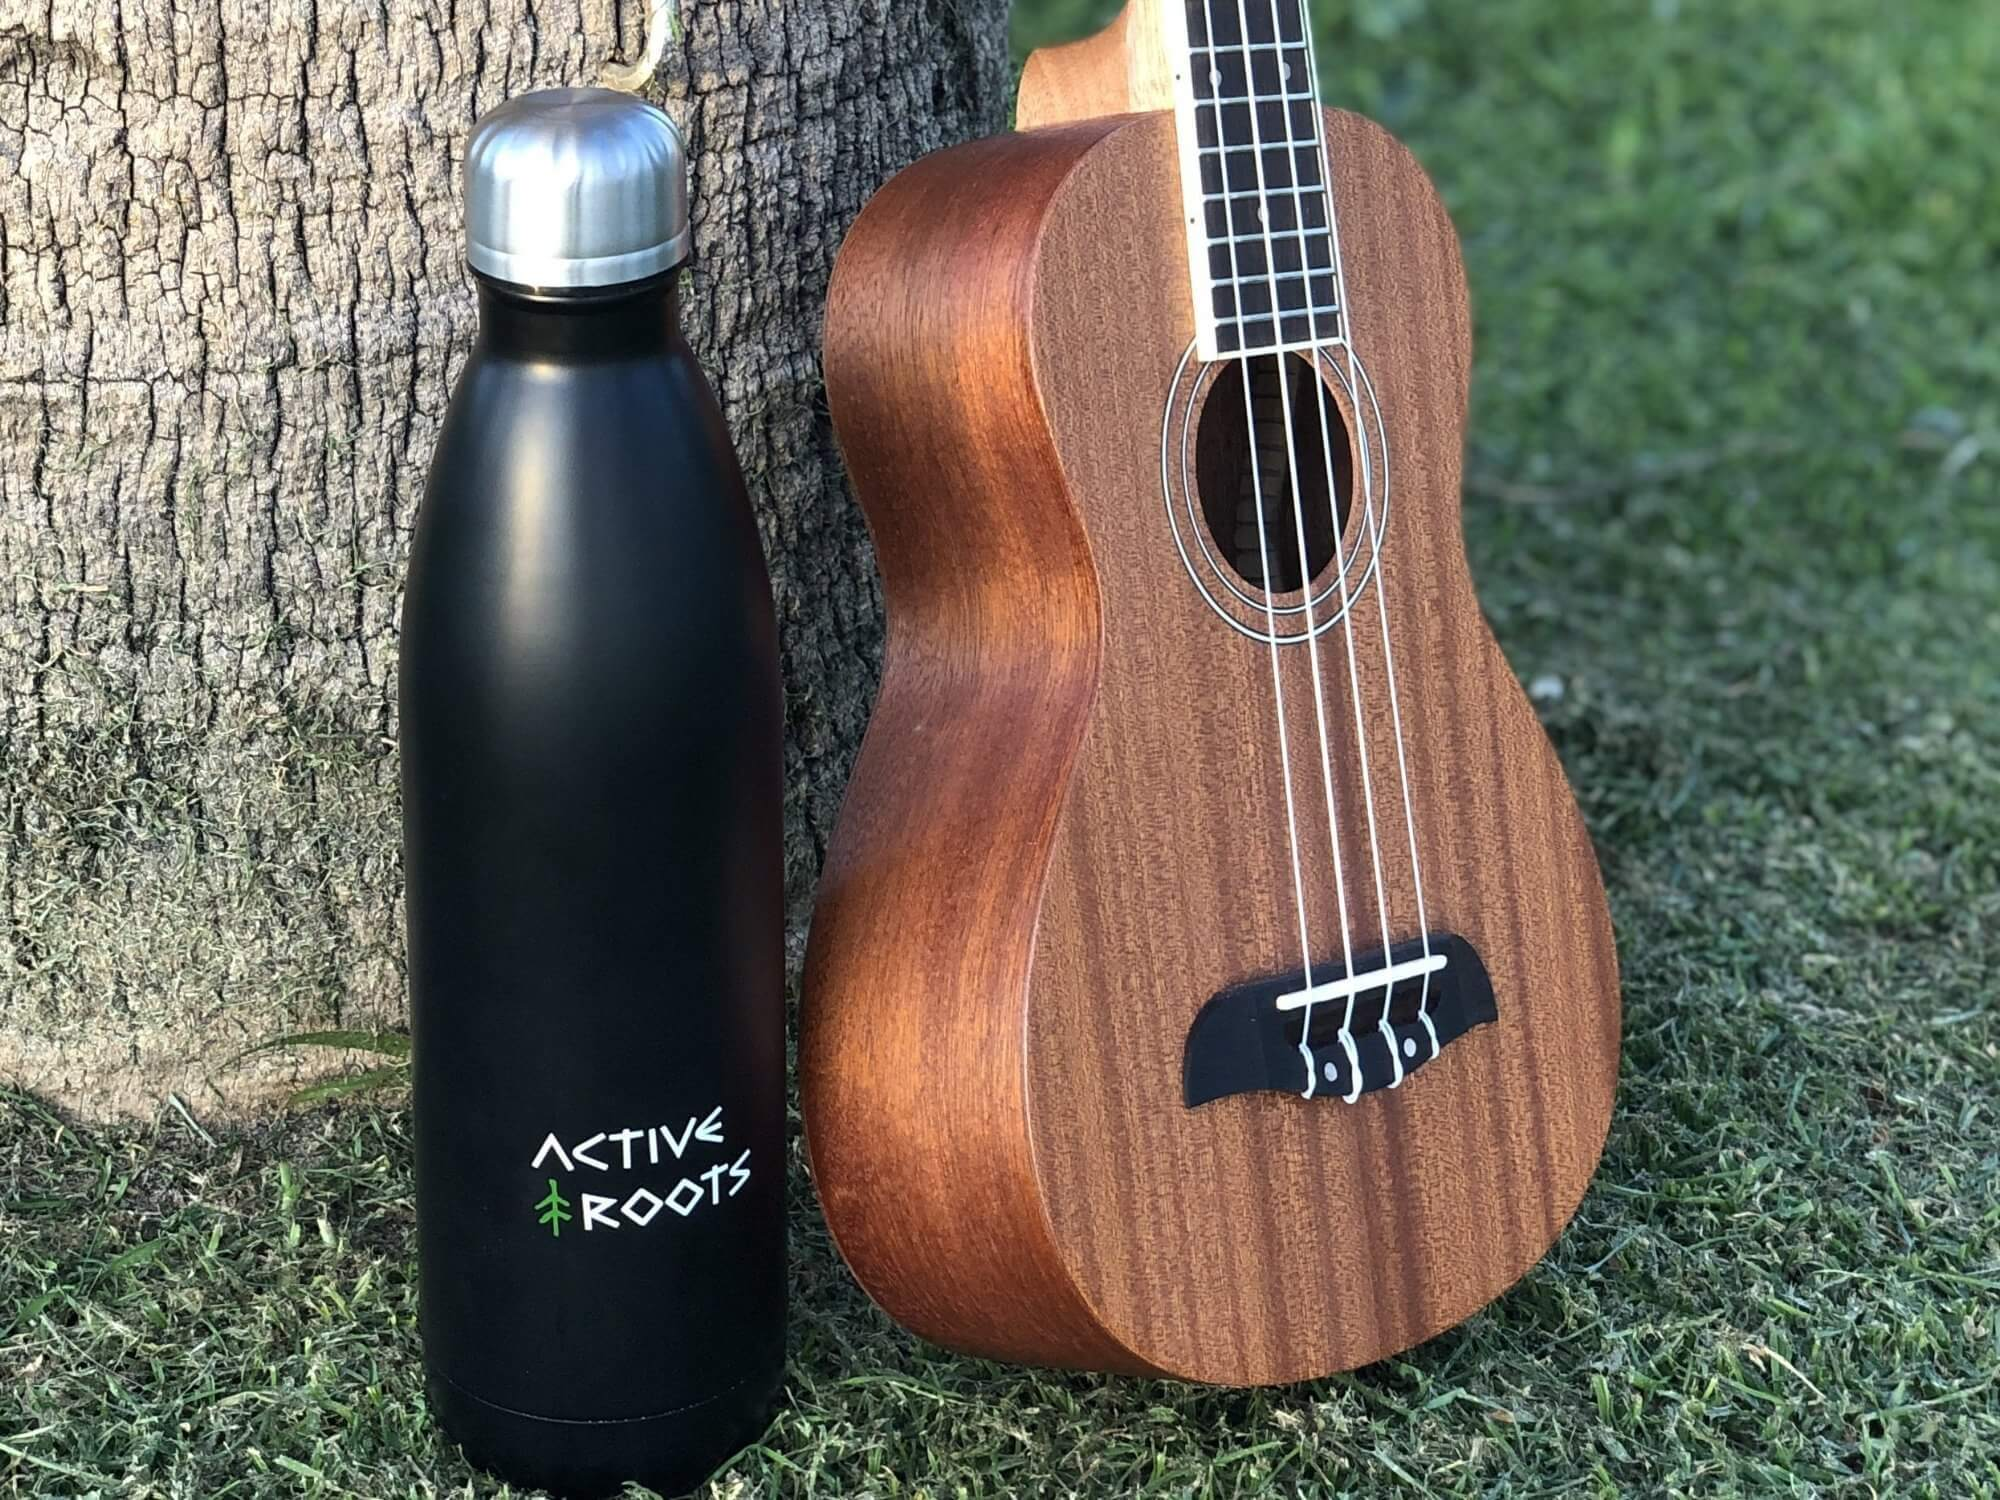 The best travel bottle around is perfect for camping too